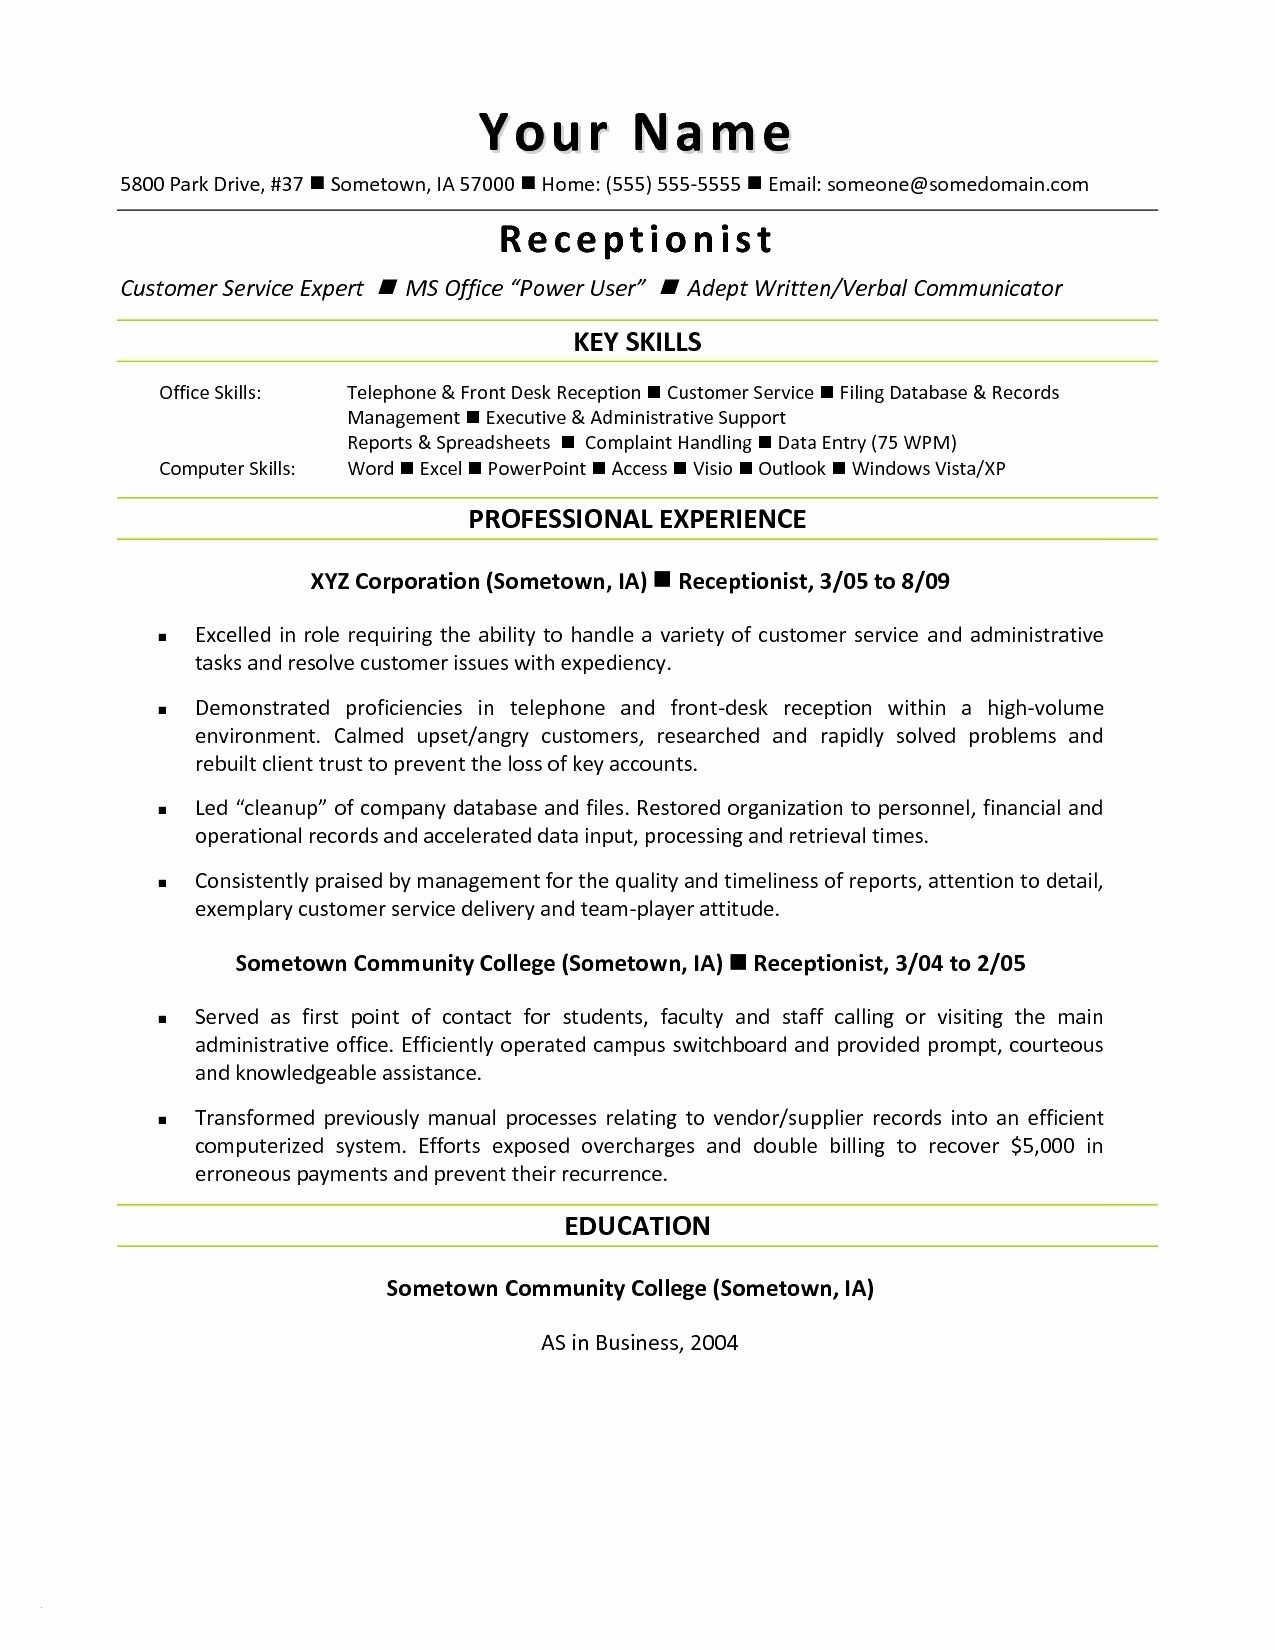 Er Nurse Responsibilities Resume - Construction Job Resume Unique Elegant Good Nursing Resume Elegant